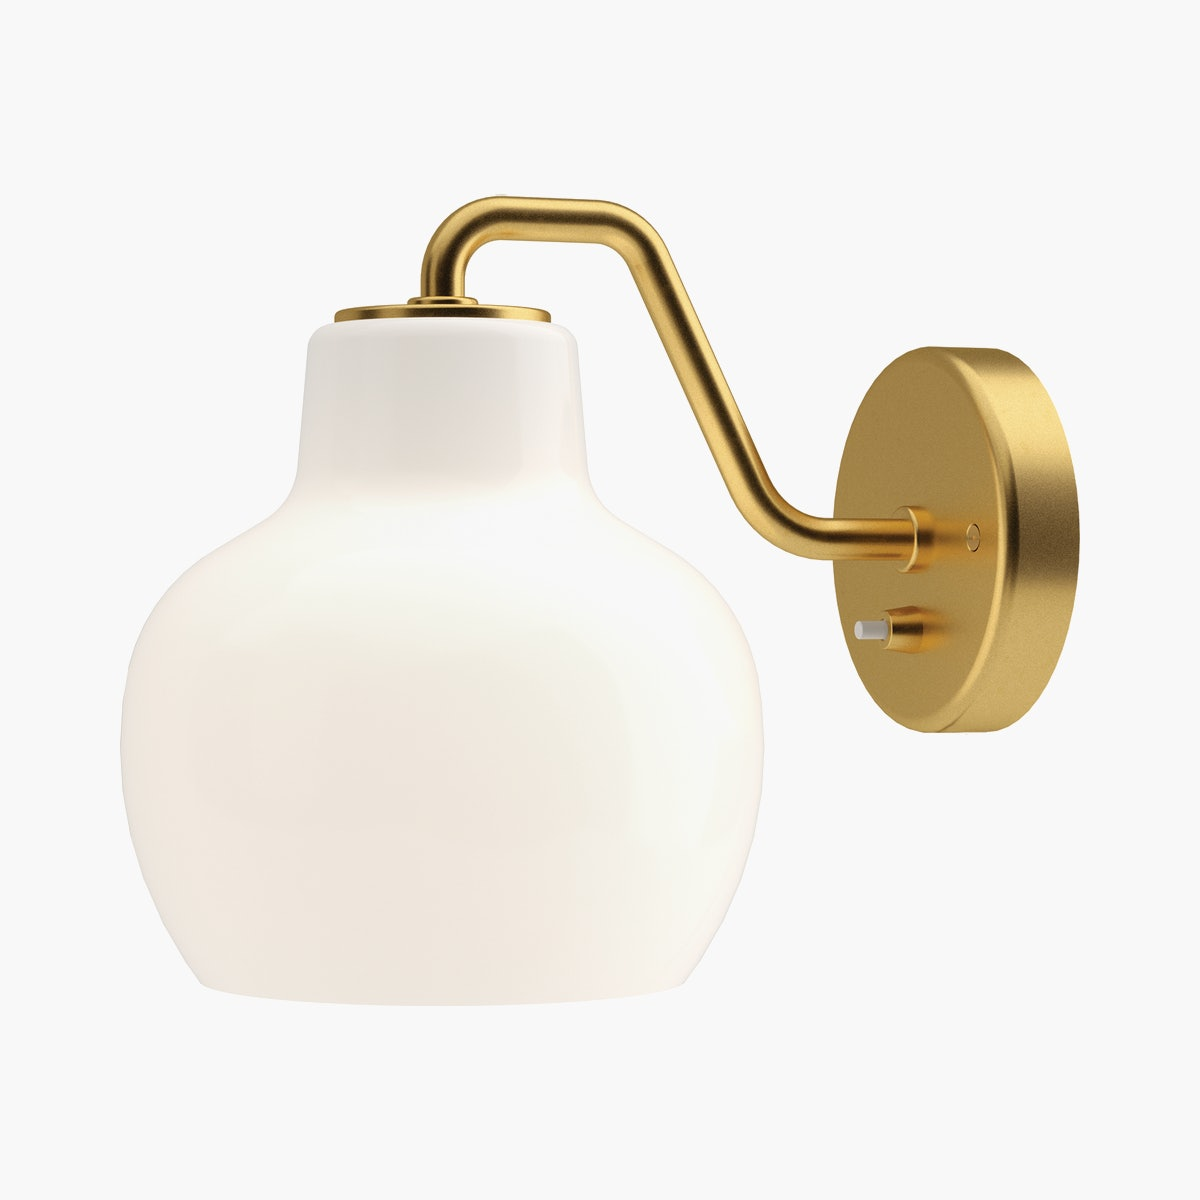 VL Ring Crown Wall Sconce